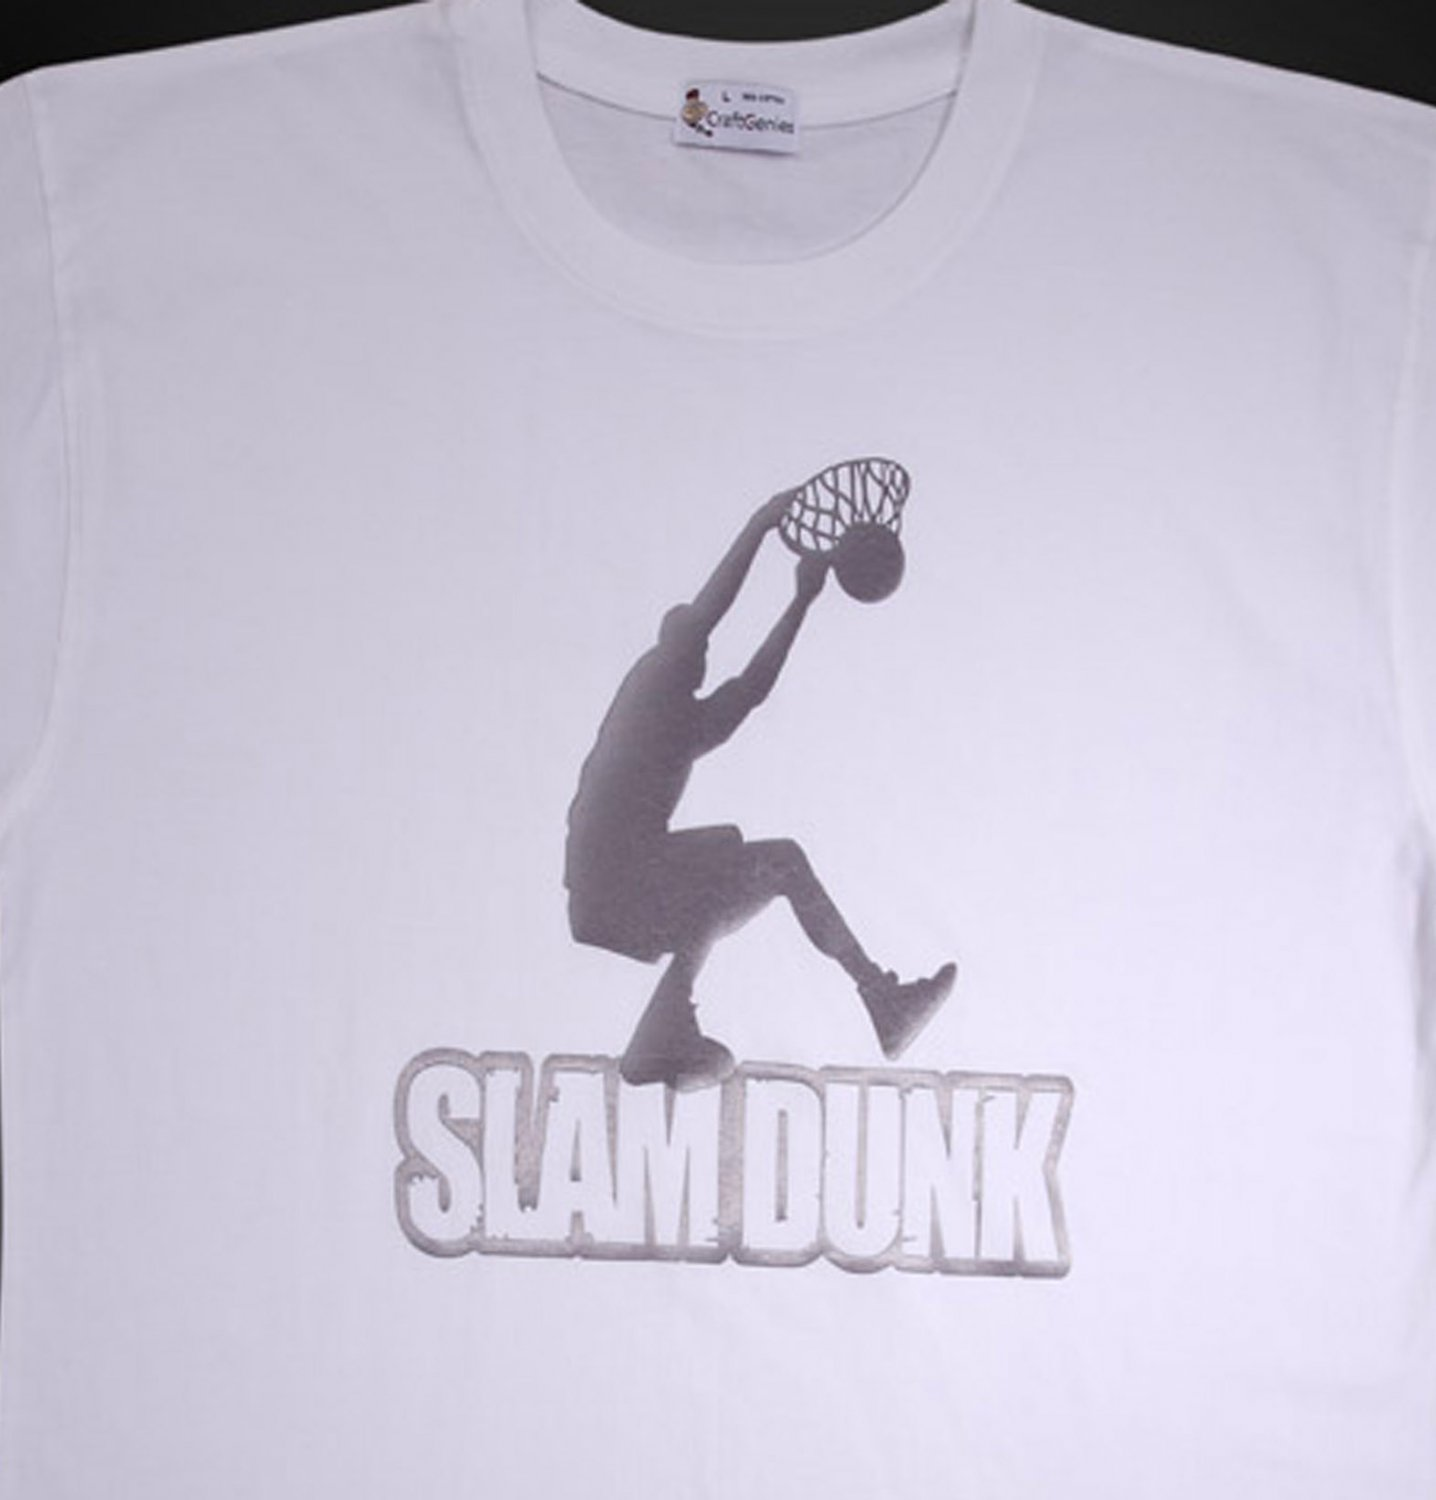 Dunk T Shirt For Sports Fans - Original, Never Opened  (Men's Large)